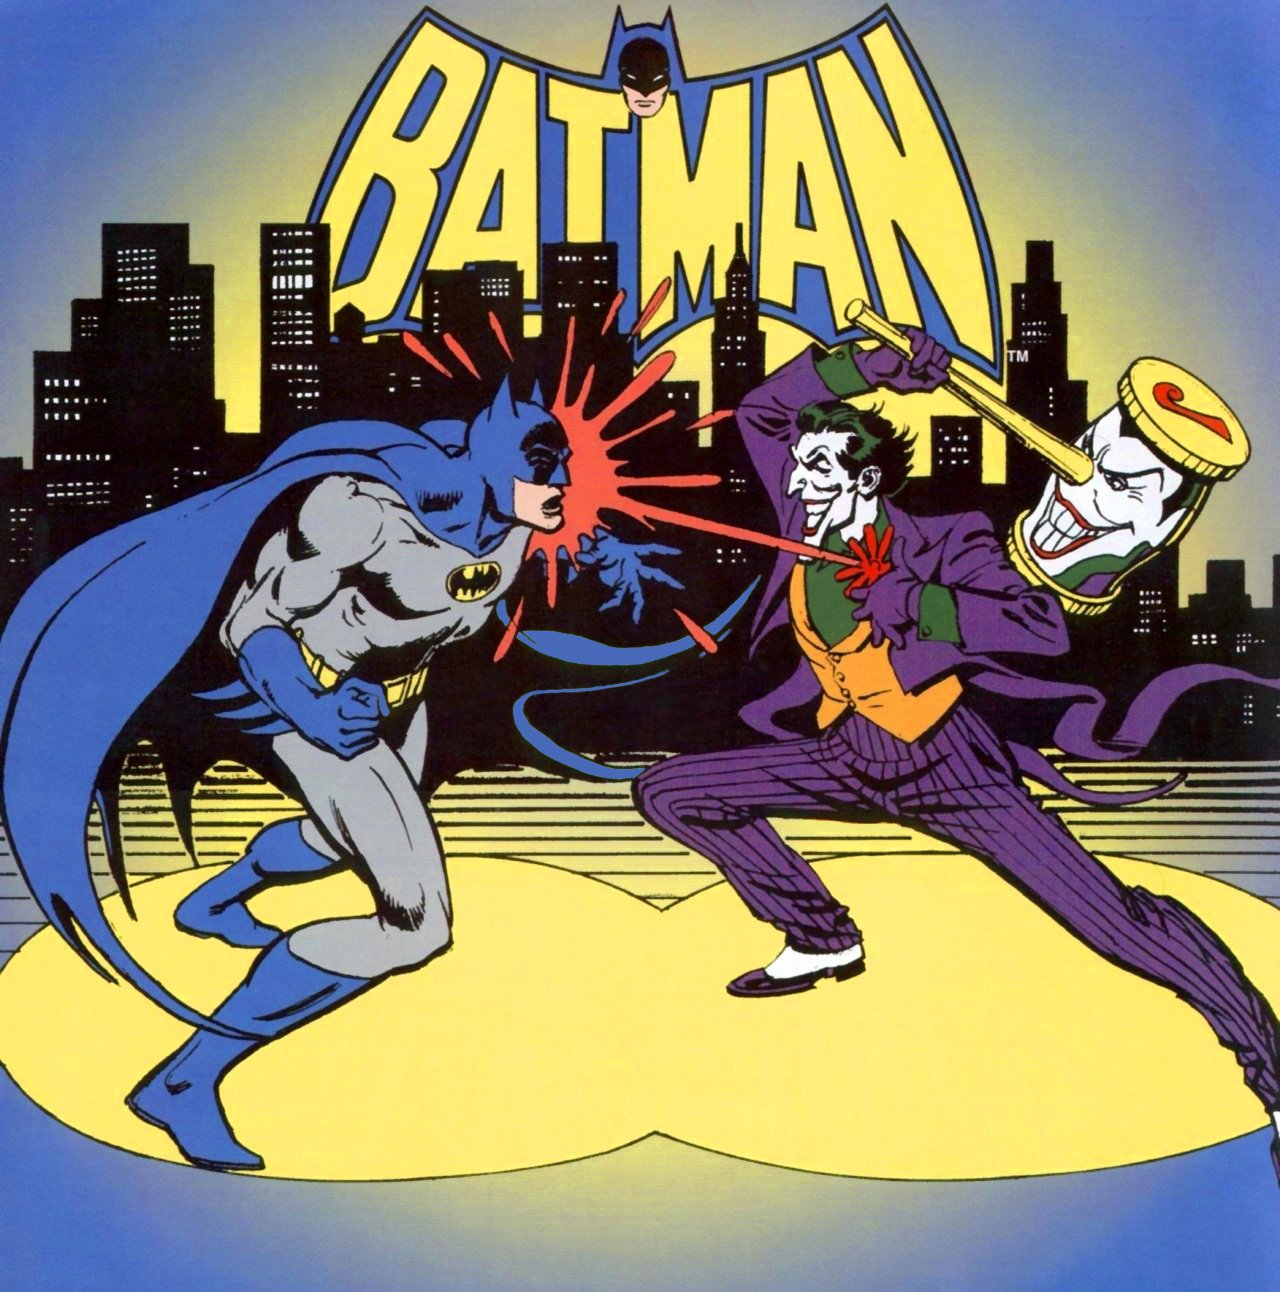 Batman vs joker clipart. Clipartfest logo images about